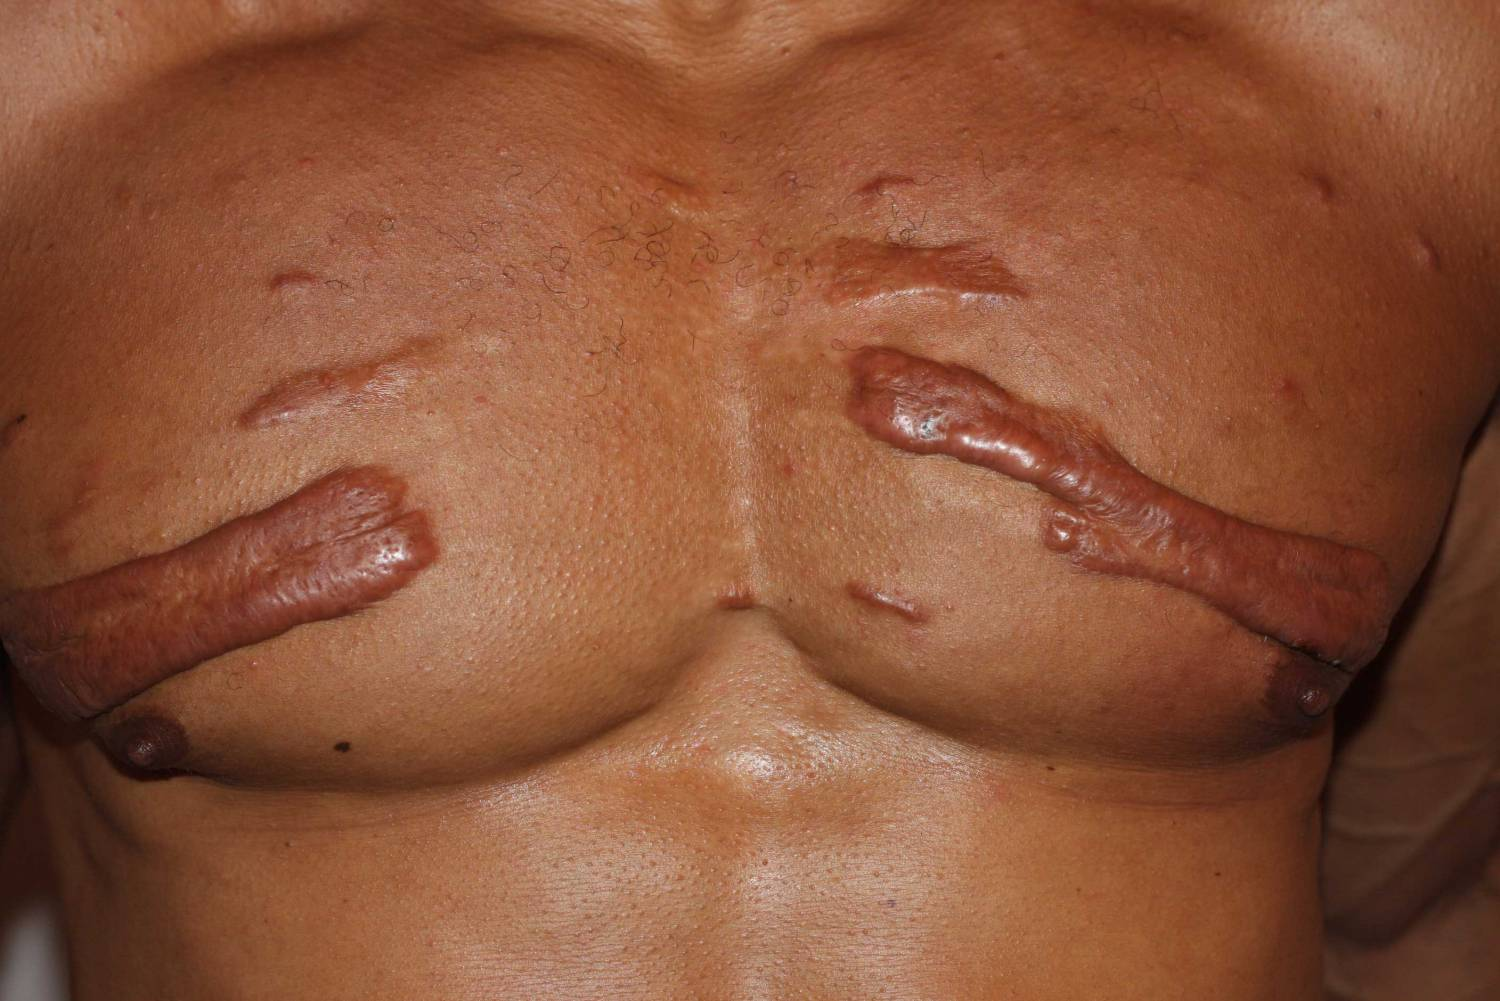 Mixed variety keloids in chest wall